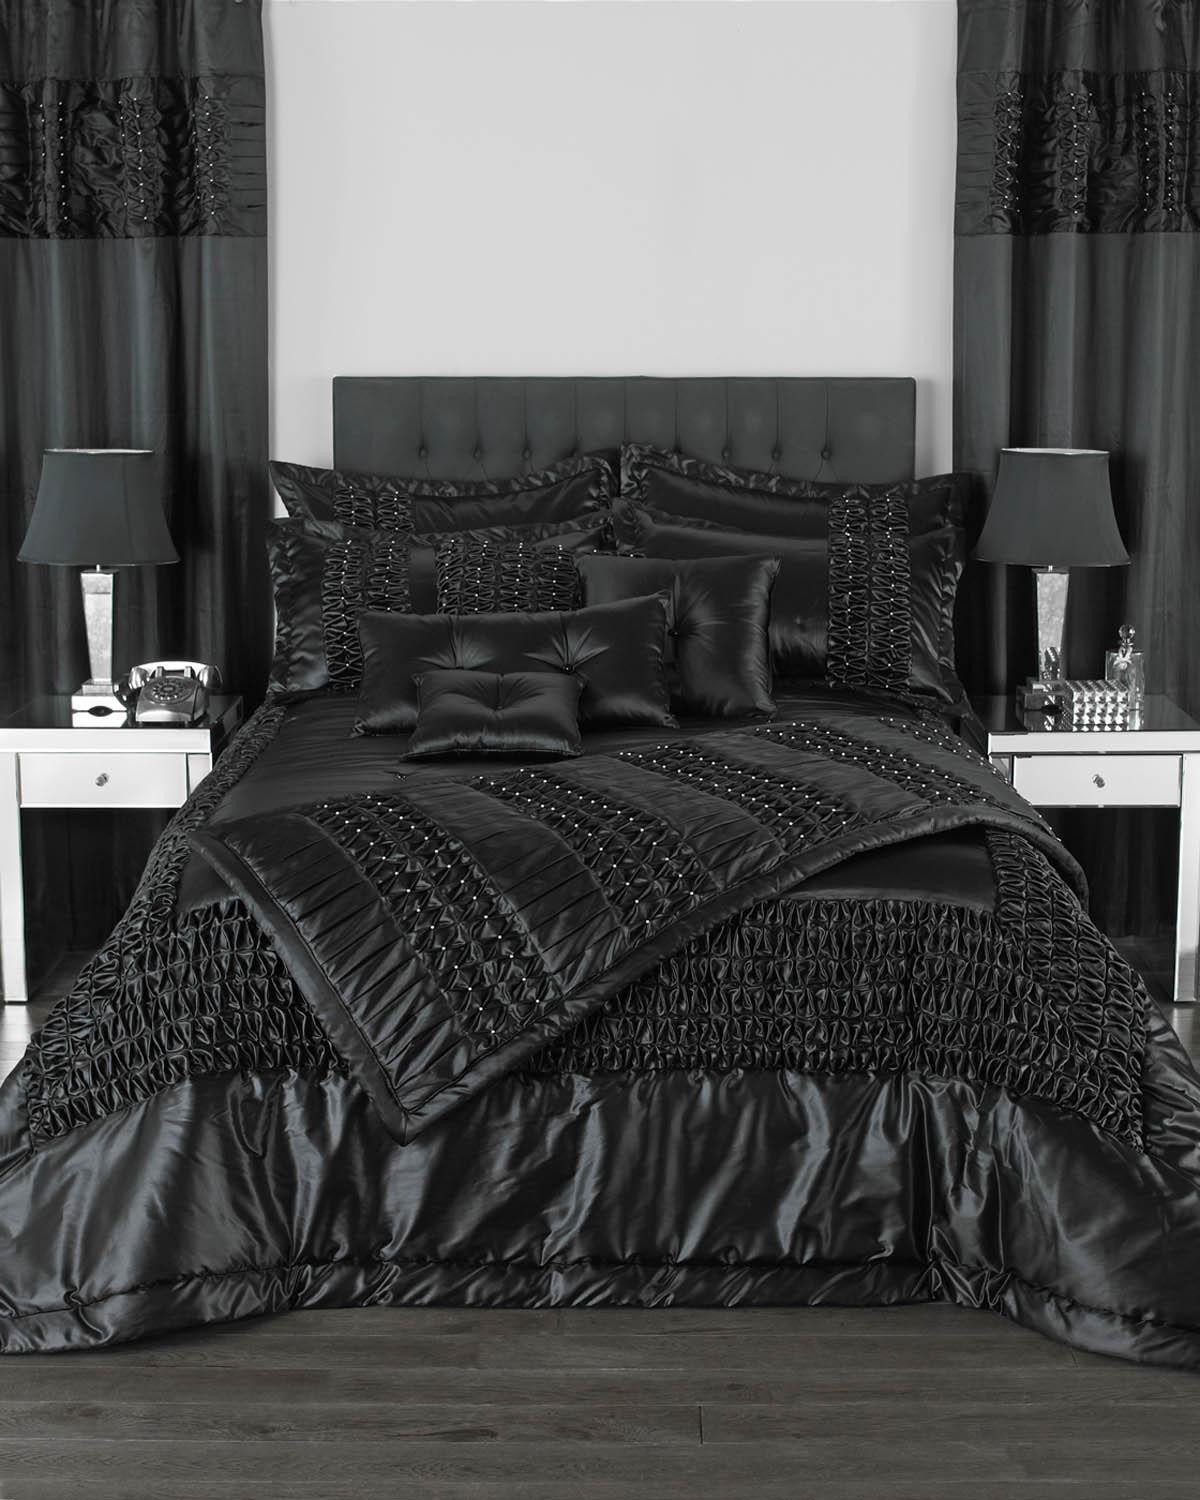 Riva Cushions And Throws Monte Carlo Bedspread Collection Black Picture